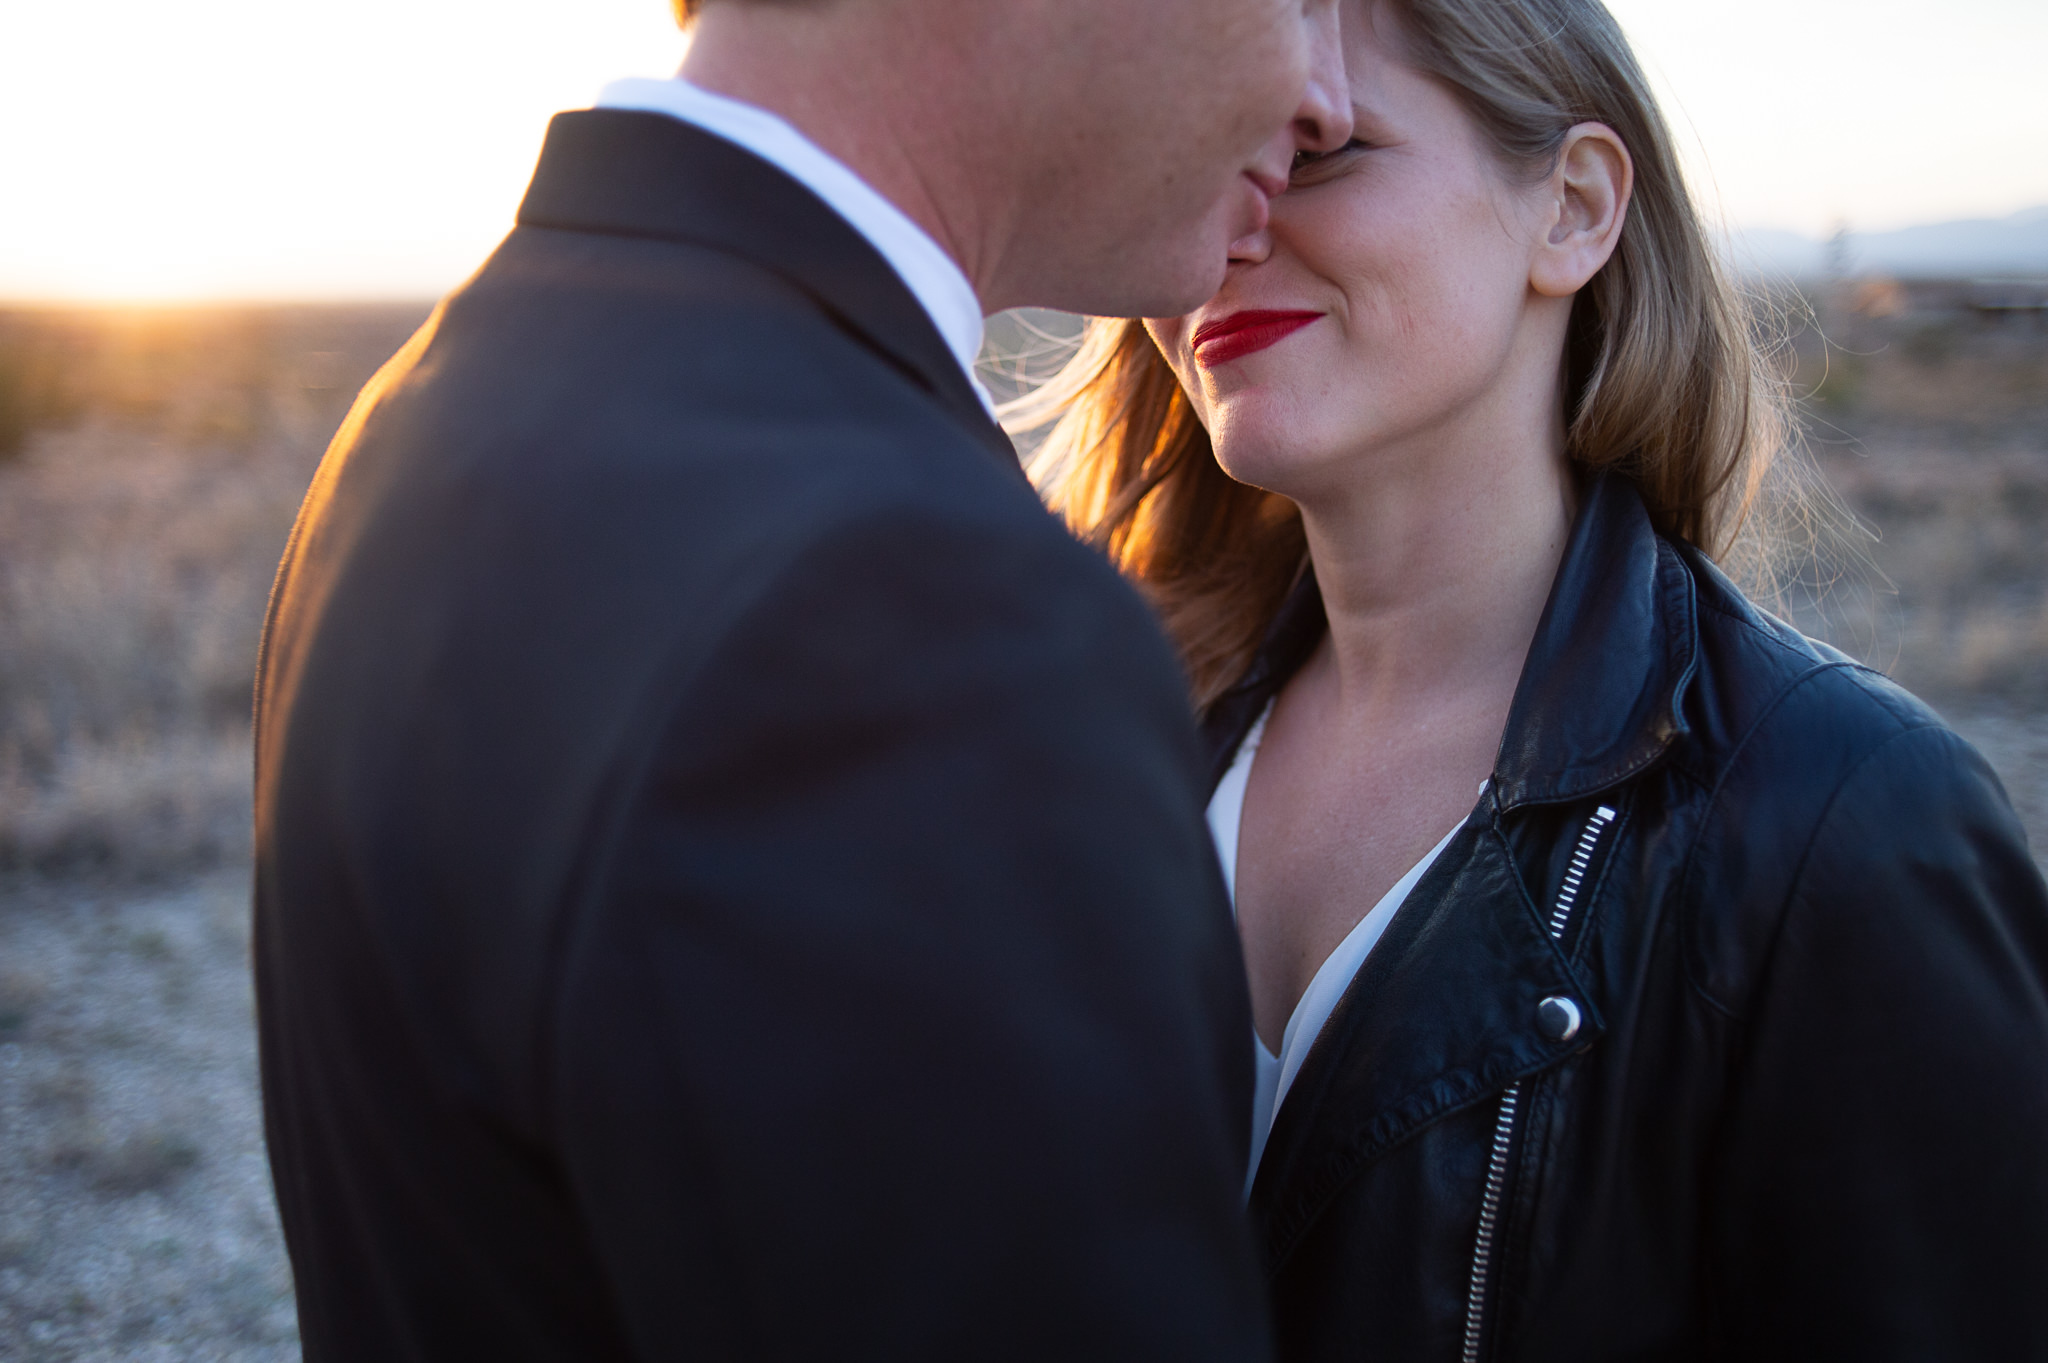 An unedited photo of a couple who puts their heads close together.